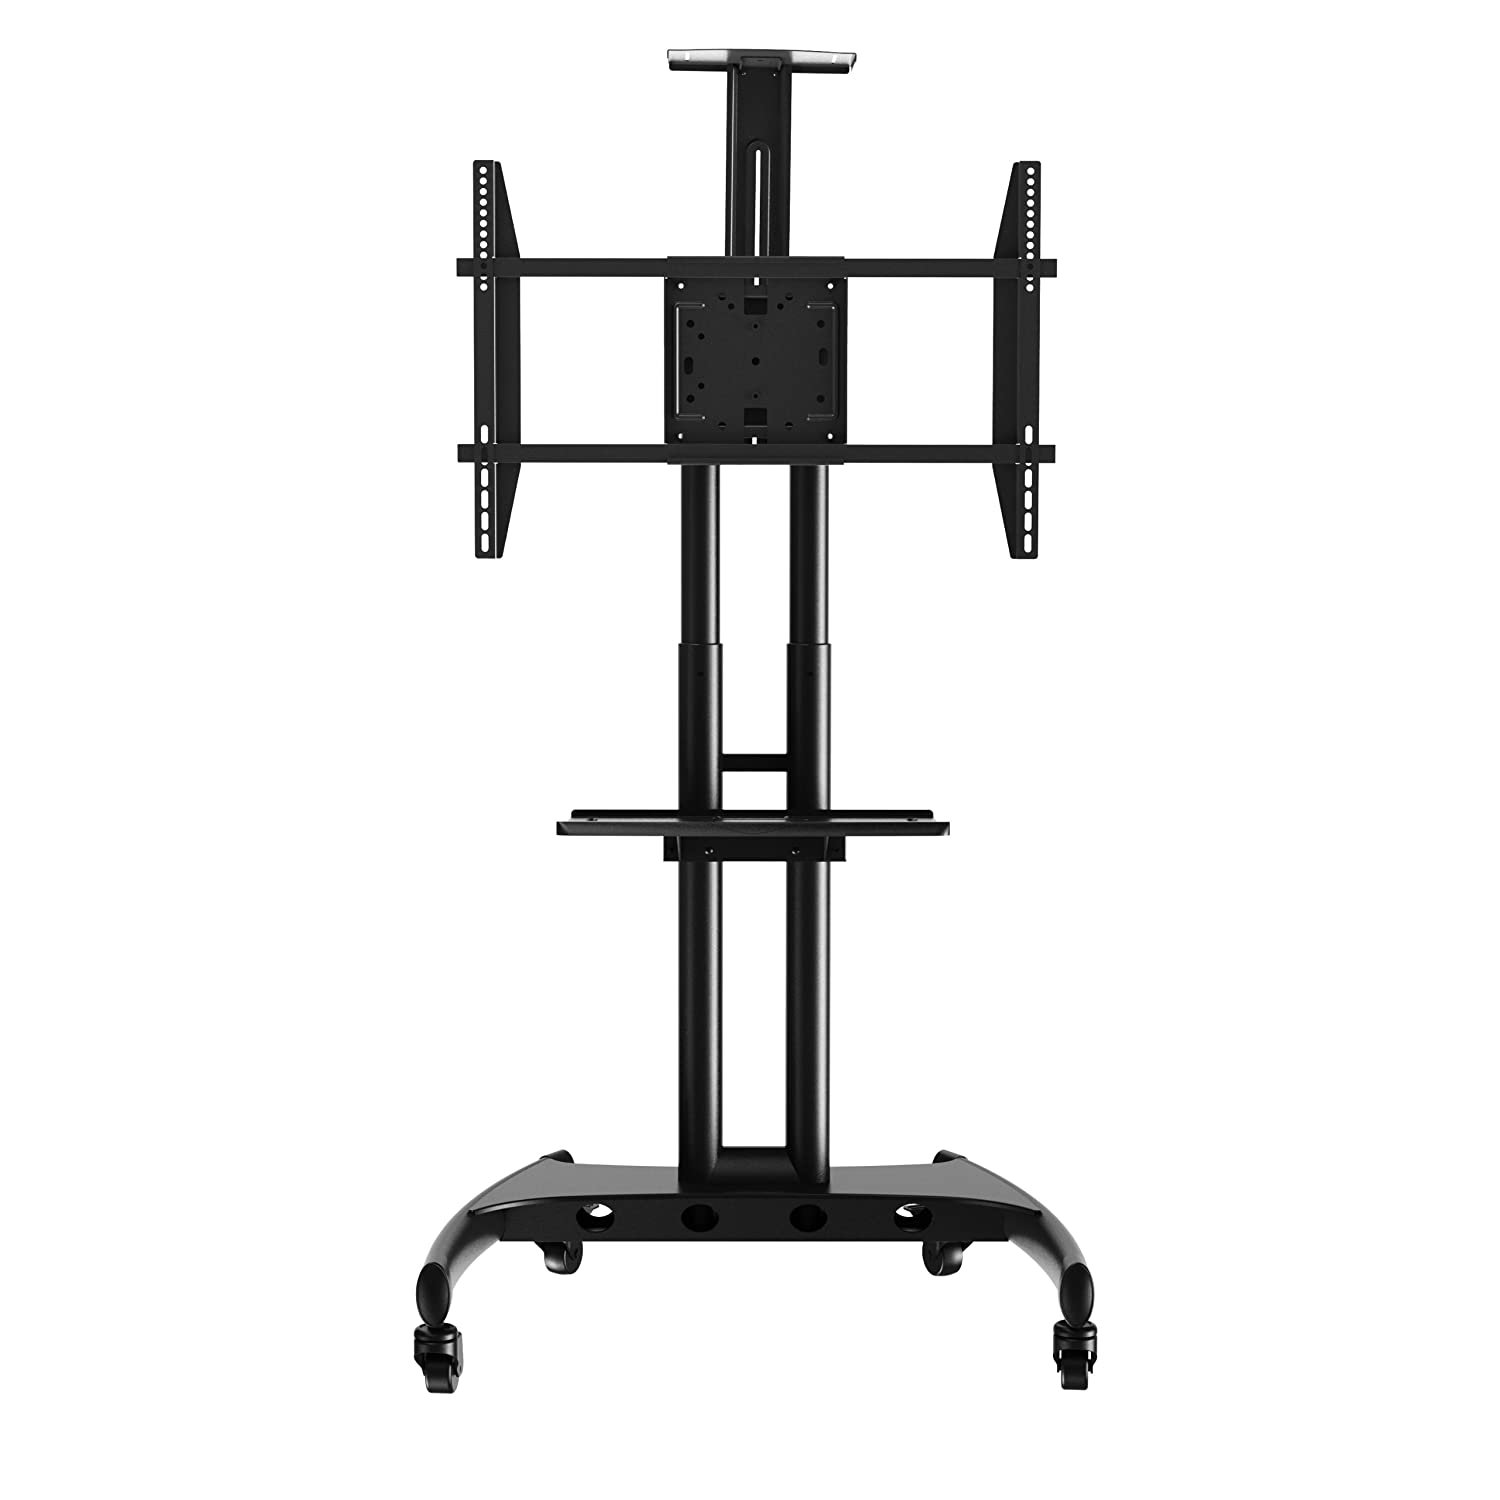 Rocelco VSTC Adjustable Height Mobile TV Stand, for 40-70 Flat Screen TV, with AV and Webcam Shelf, Black R VSTC